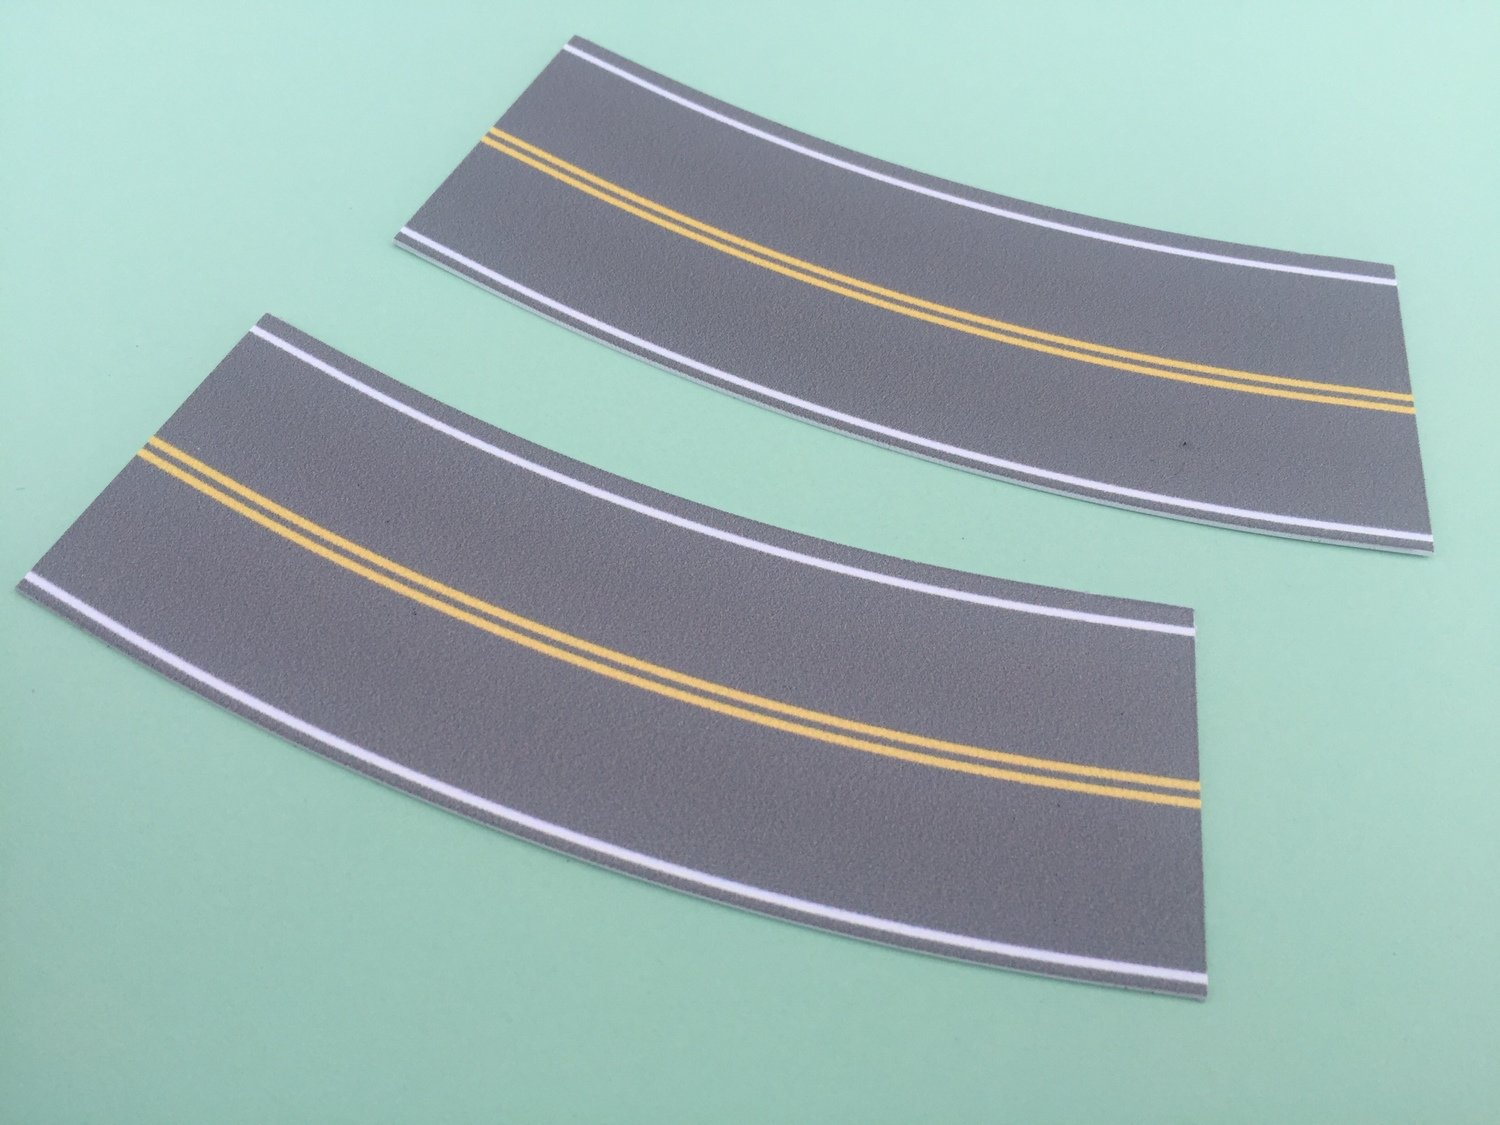 Easy Streets N - Medium Asphalt-Broad Curve No Passing